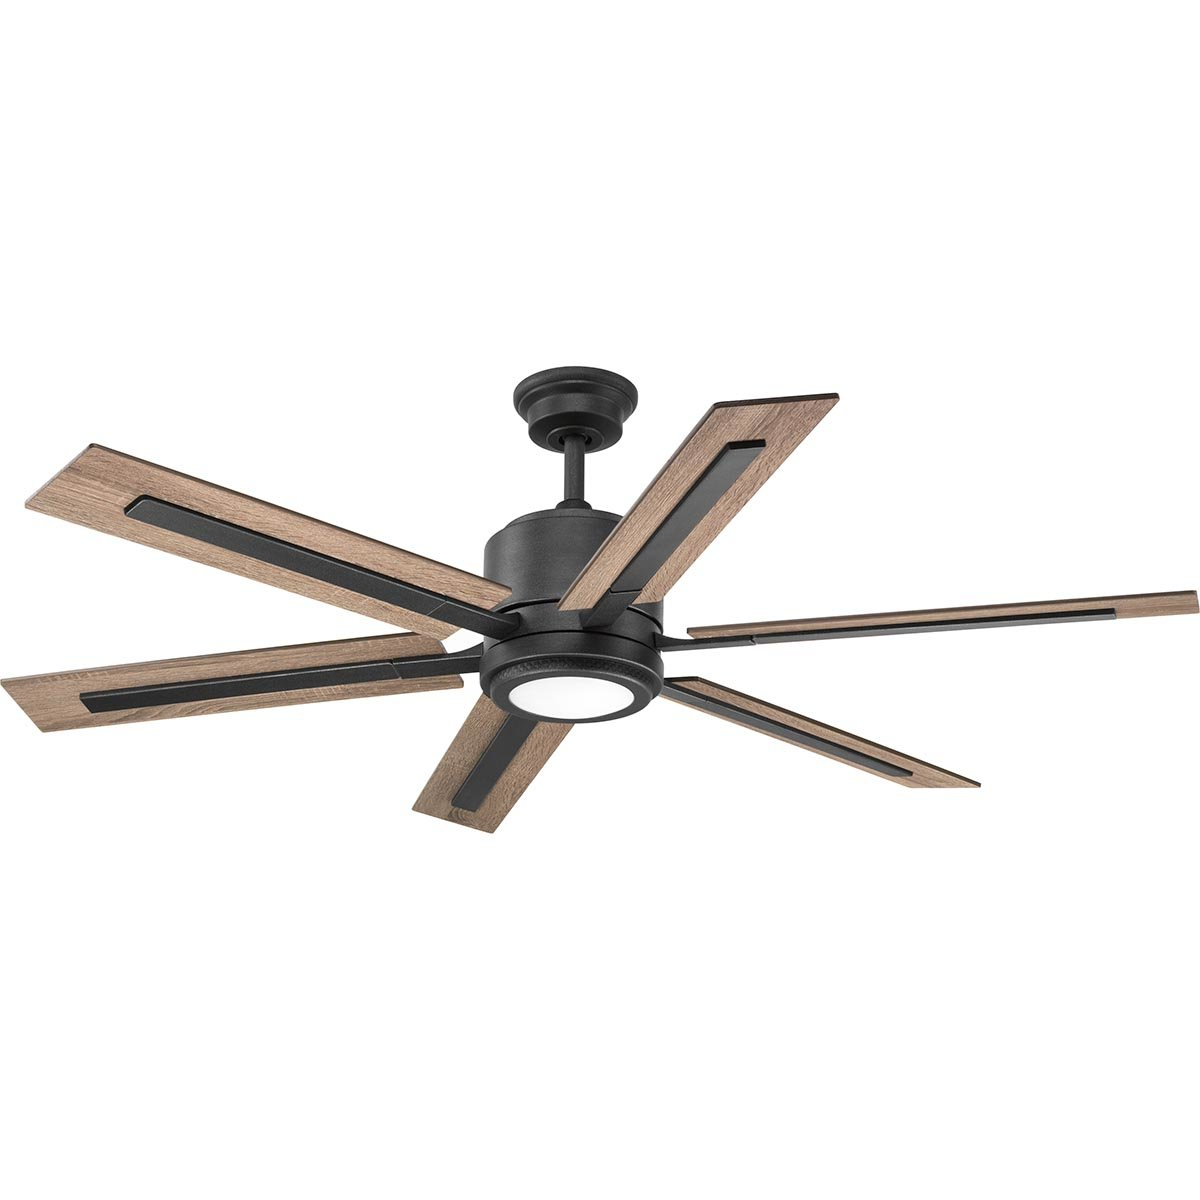 Ravello 5 Blade Led Ceiling Fans Throughout Most Popular Led Ceiling Fans – Home Depot Ceiling Fans (Gallery 18 of 20)